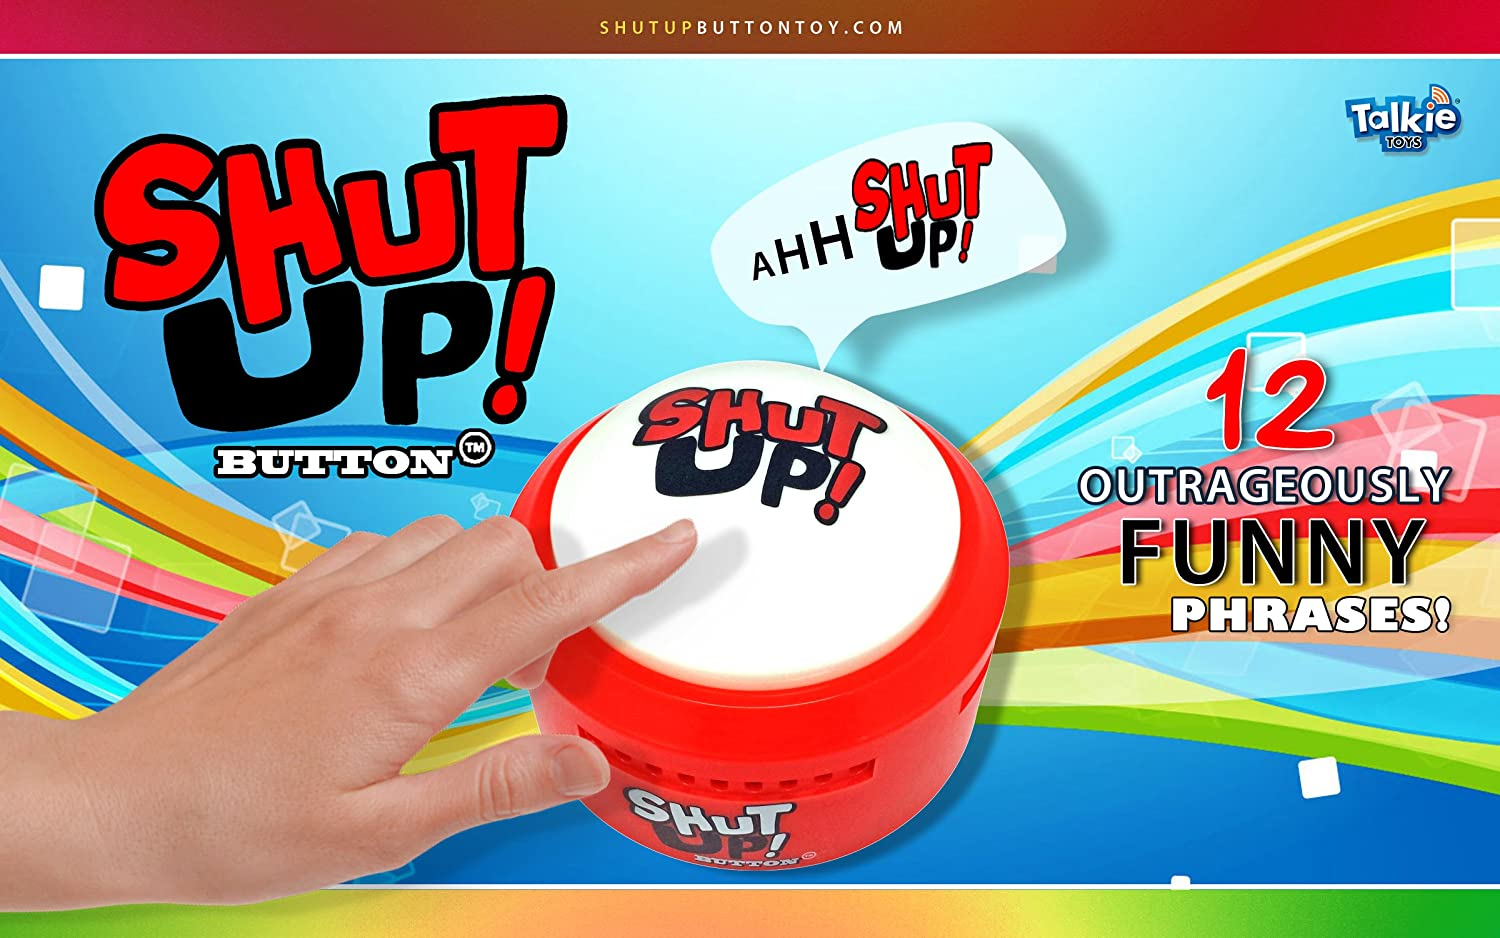 Shut Up Button Talking Button Features Hilarious Shut Up Sayings Talking Novelty Gift with Funny Sound Clips